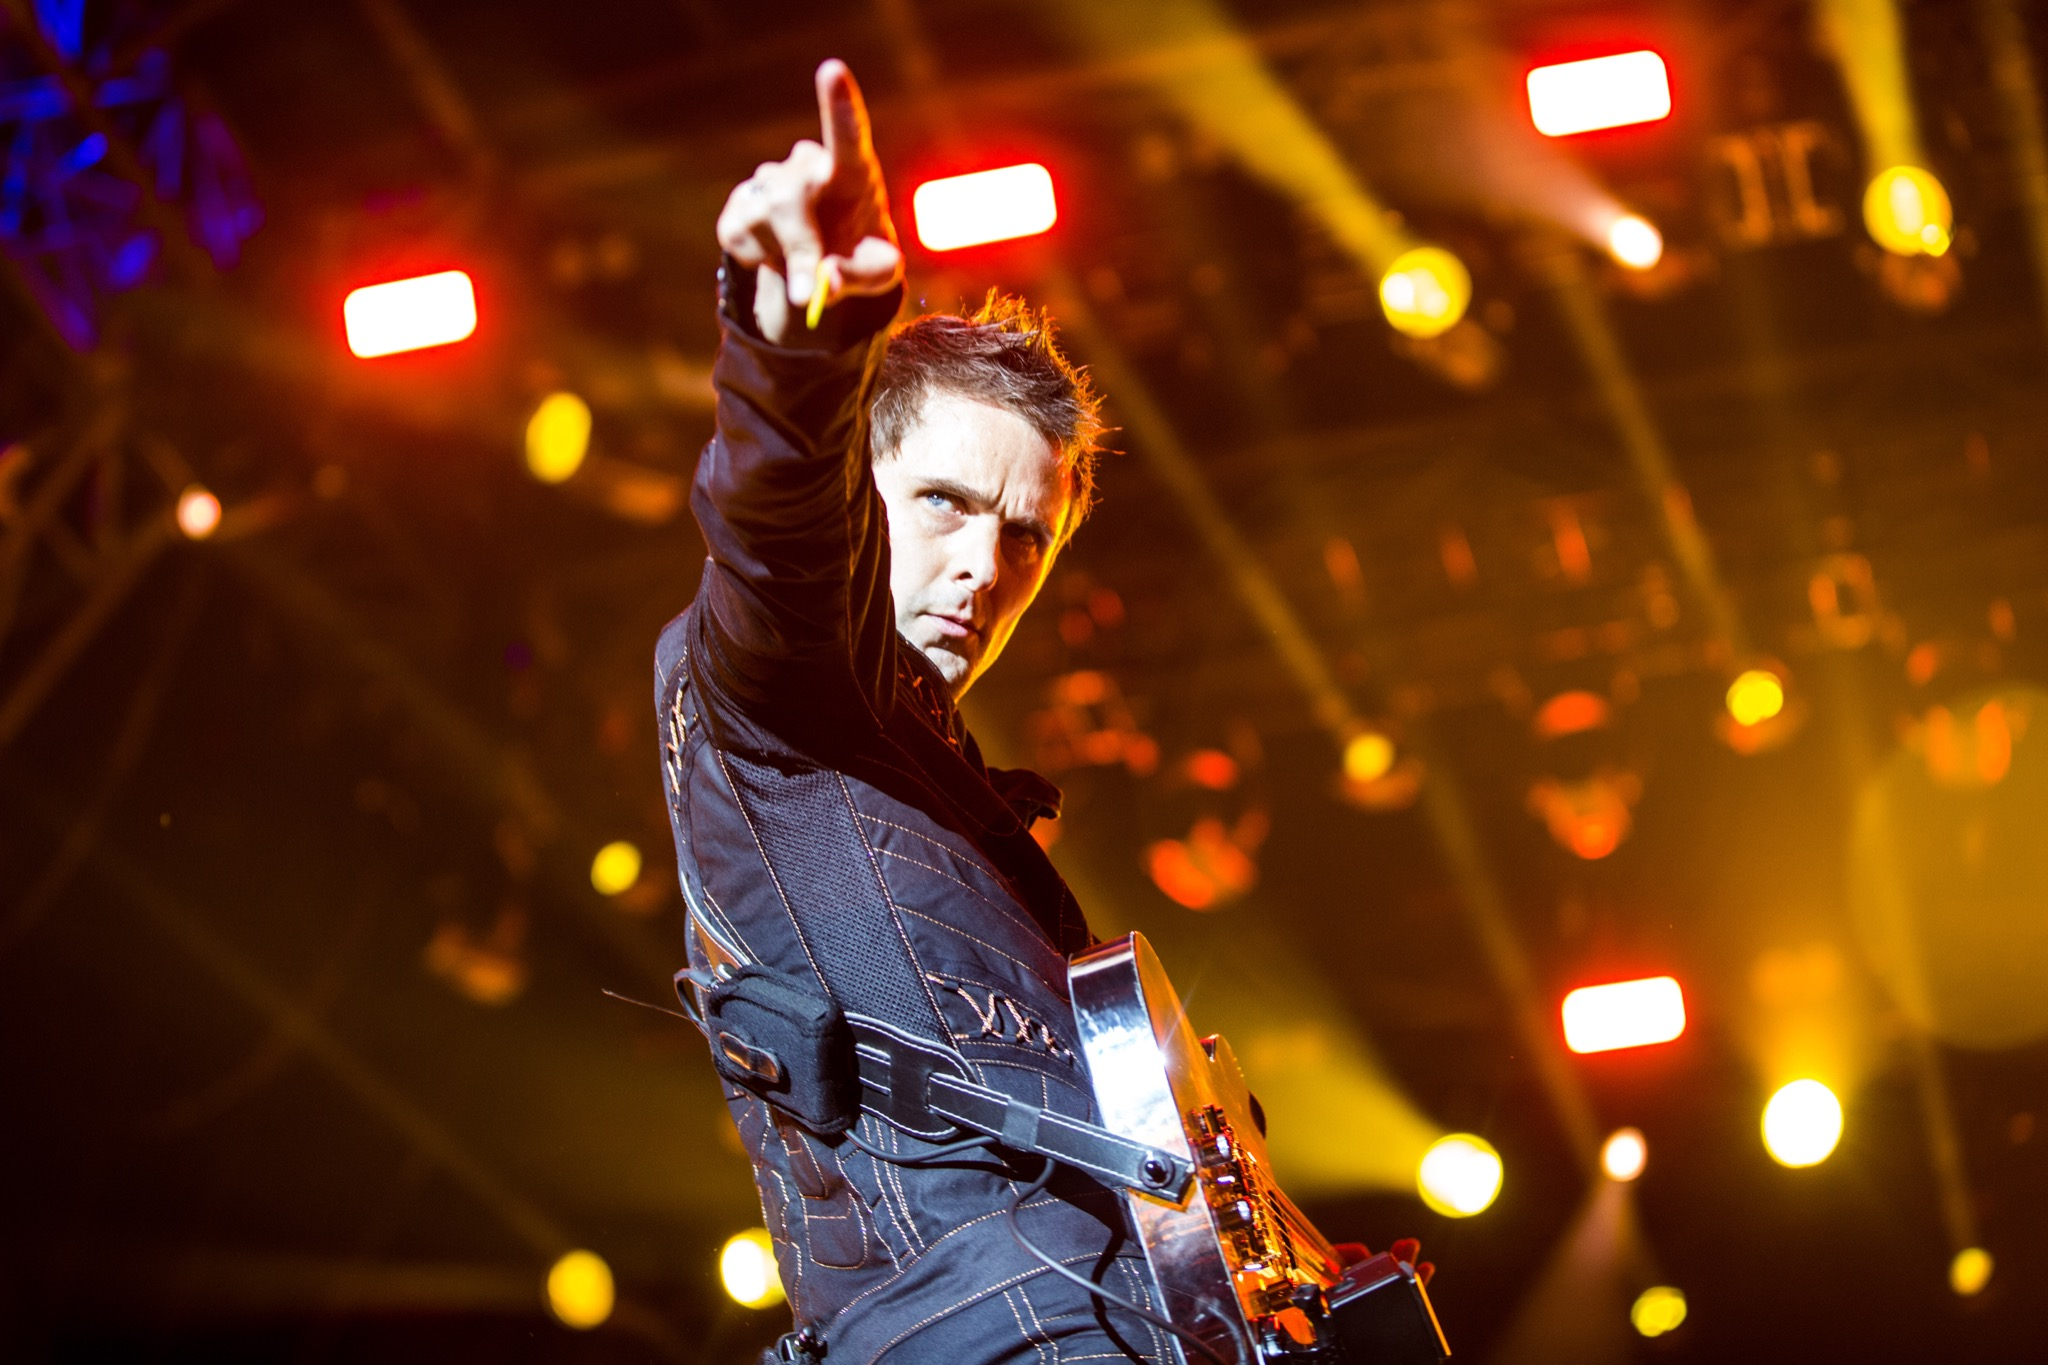 Muse want to learn to fly using magnets, their tour director can't sleep over it